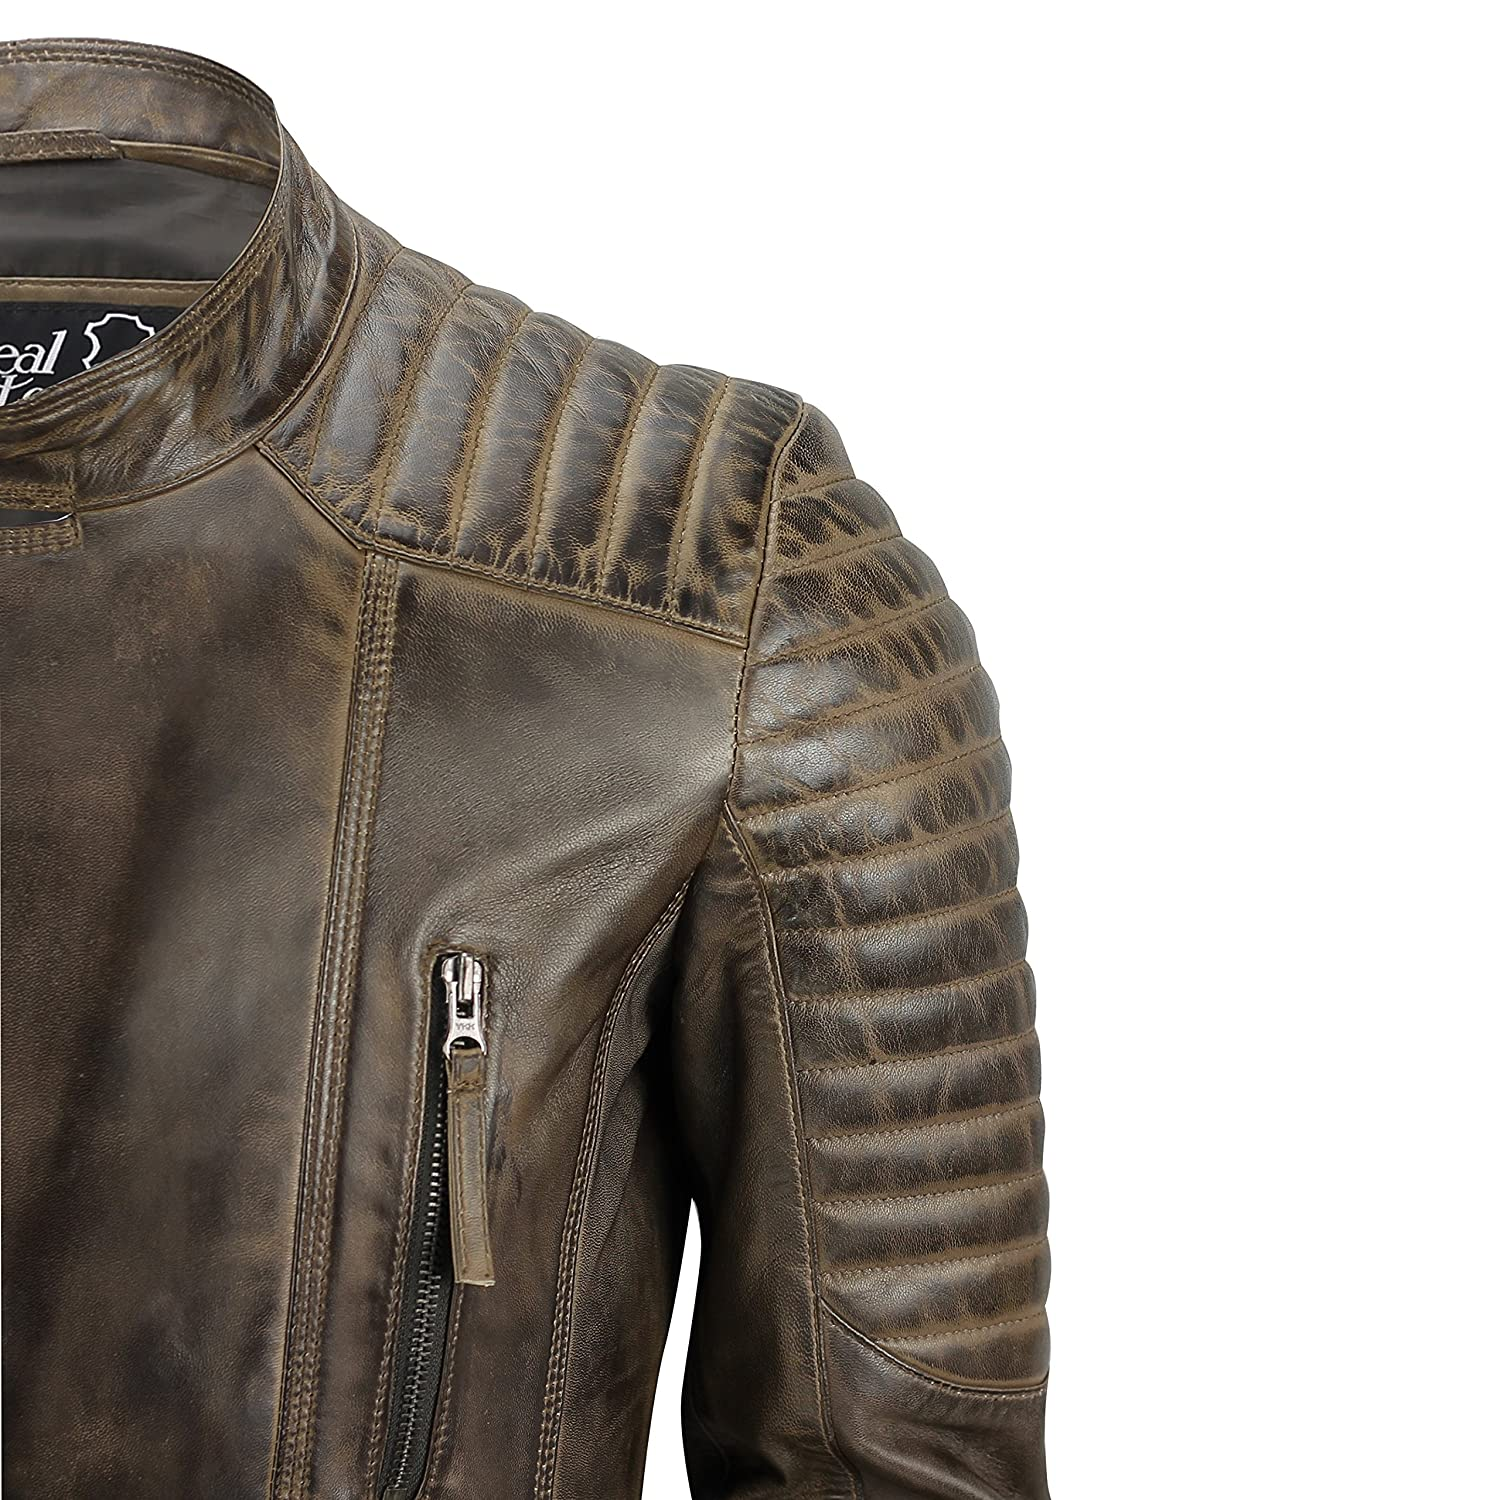 XPOSED Mens Real Leather Biker Jacket Antique Washed Brown Smart Casual Vintage Slim Fit Zip Coat at Amazon Mens Clothing store: